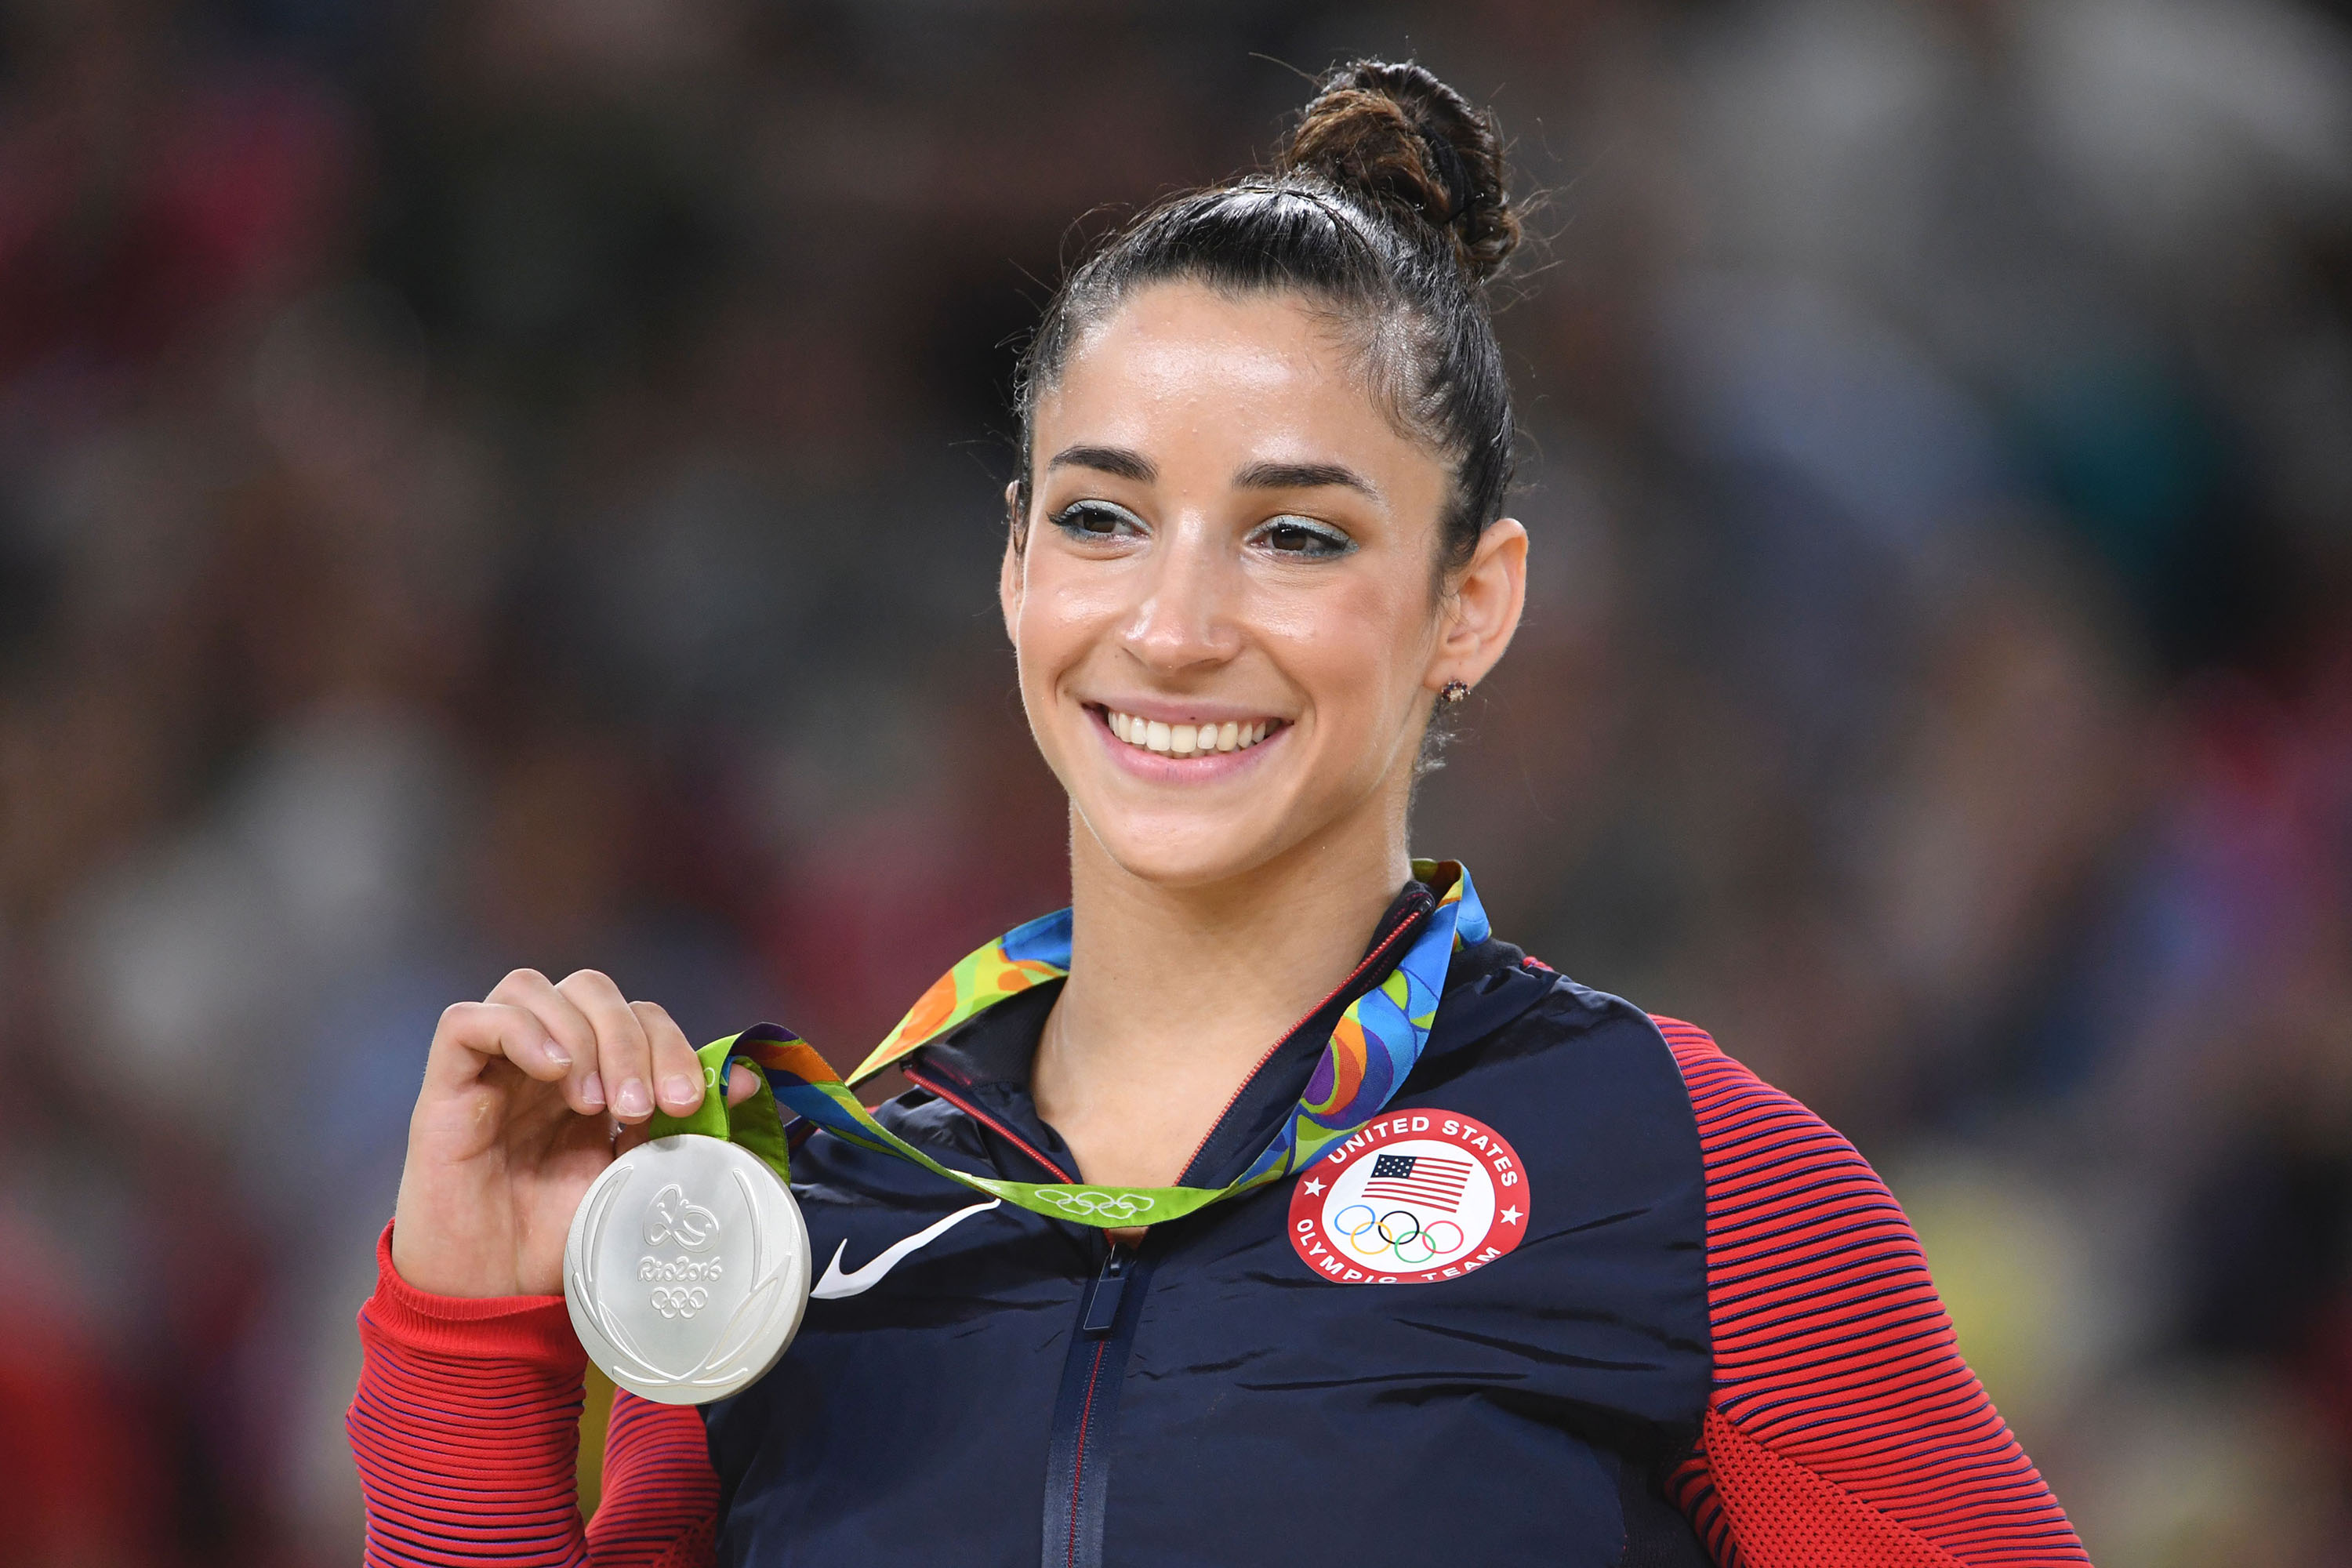 Simone Biles may have pulled off a historic medal haul in Rio, but the return of Aly Raisman was remarkable. Raisman was a member of the Fierce Five in 2012, winning the team all-around gold medal. She also won gold in the floor exercise and a bronze in the balance beam in London. With the exception of Gabby Douglas, all her teammates from London either retired or opted not to compete in Rio. Raisman may have been older, but she also appeared stronger and better than four years ago. She departed Brazil with a team all-around gold, an individual all-around silver medal and a floor exercise silver medal. Could she make it a third Olympics in 2020?